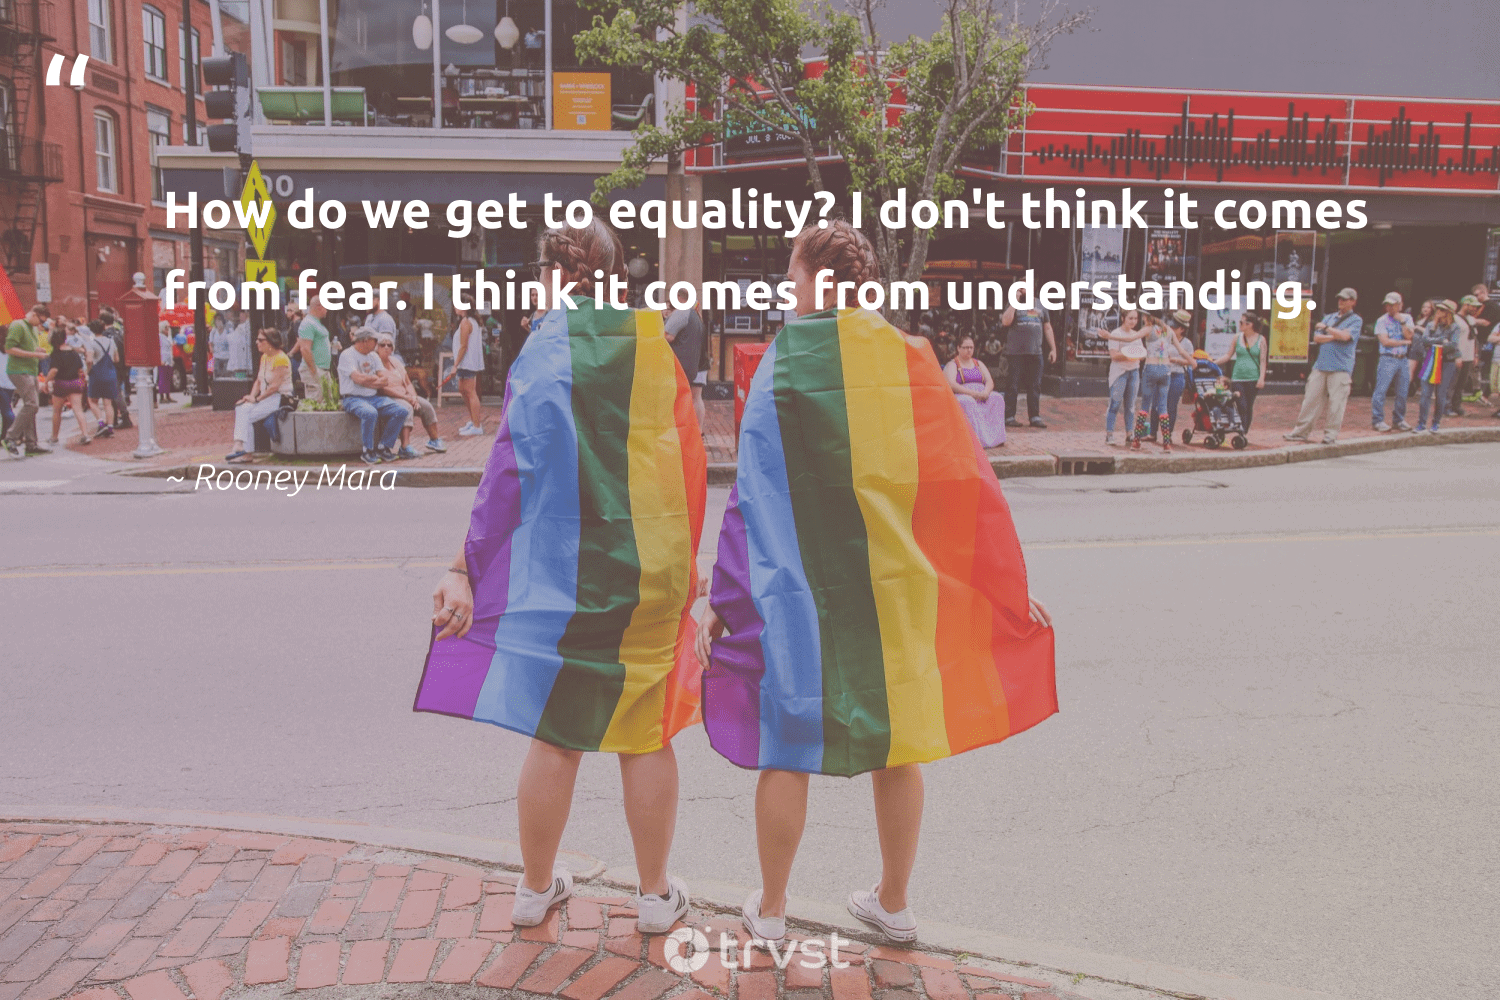 """""""How do we get to equality? I don't think it comes from fear. I think it comes from understanding.""""  - Rooney Mara #trvst #quotes #equality #equalrights #weareallone #giveback #collectiveaction #equalopportunity #socialgood #makeadifference #planetearthfirst #empowerment"""